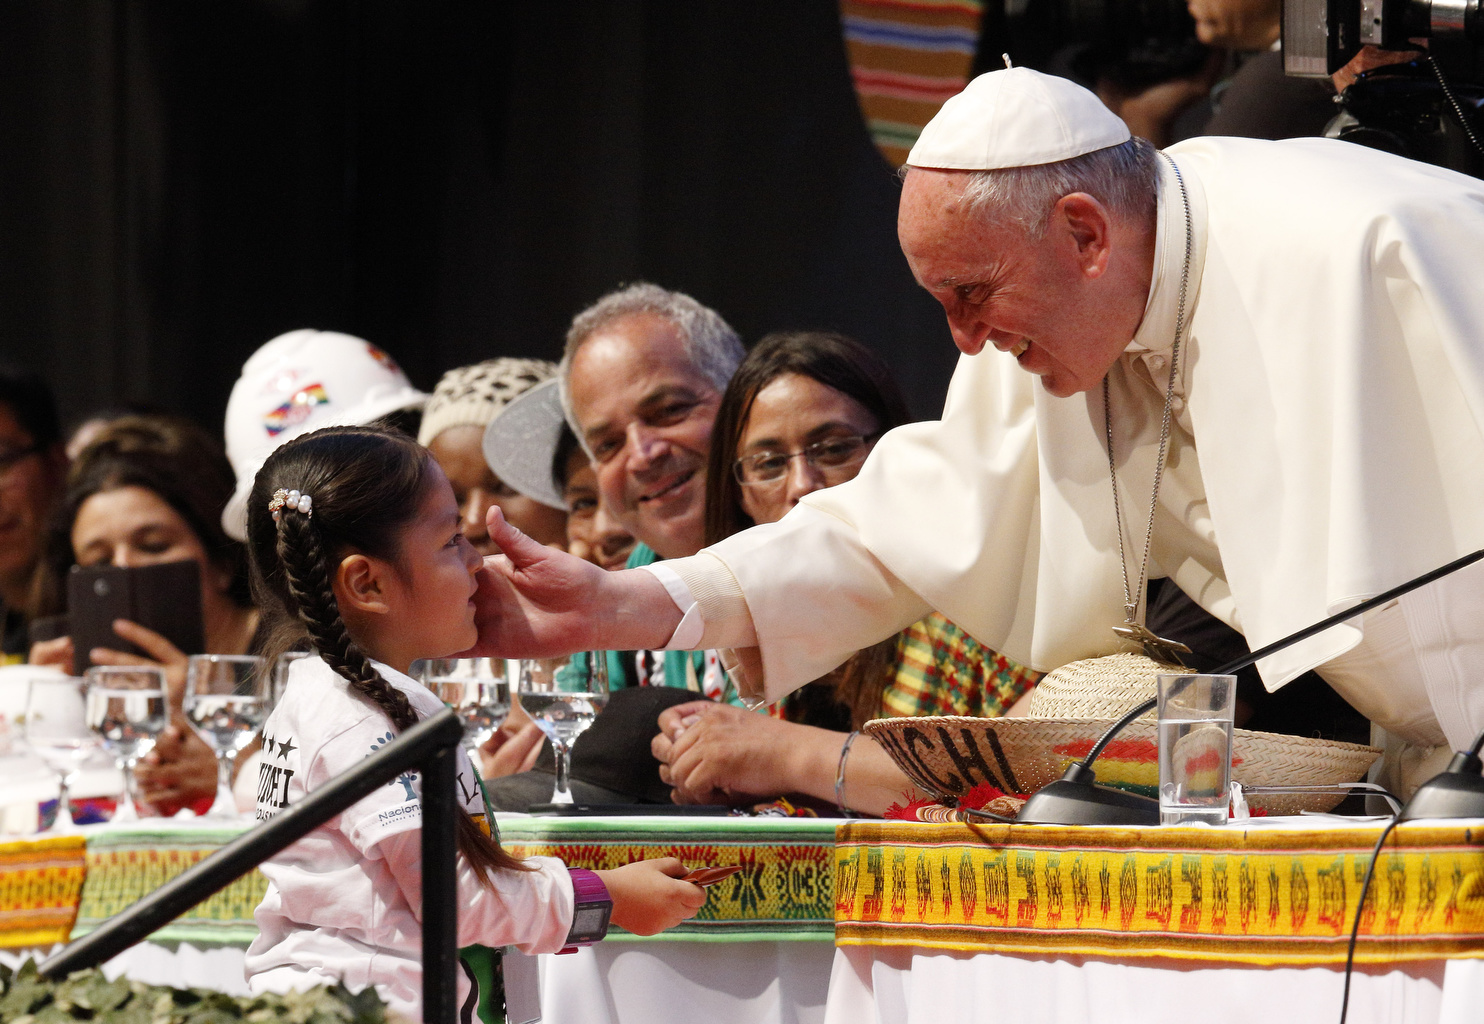 Pope Francis greets a young girl as he participates in the second World Meeting of Popular Movements in Santa Cruz, Bolivia, July 9. (CNS photo/Paul Haring)